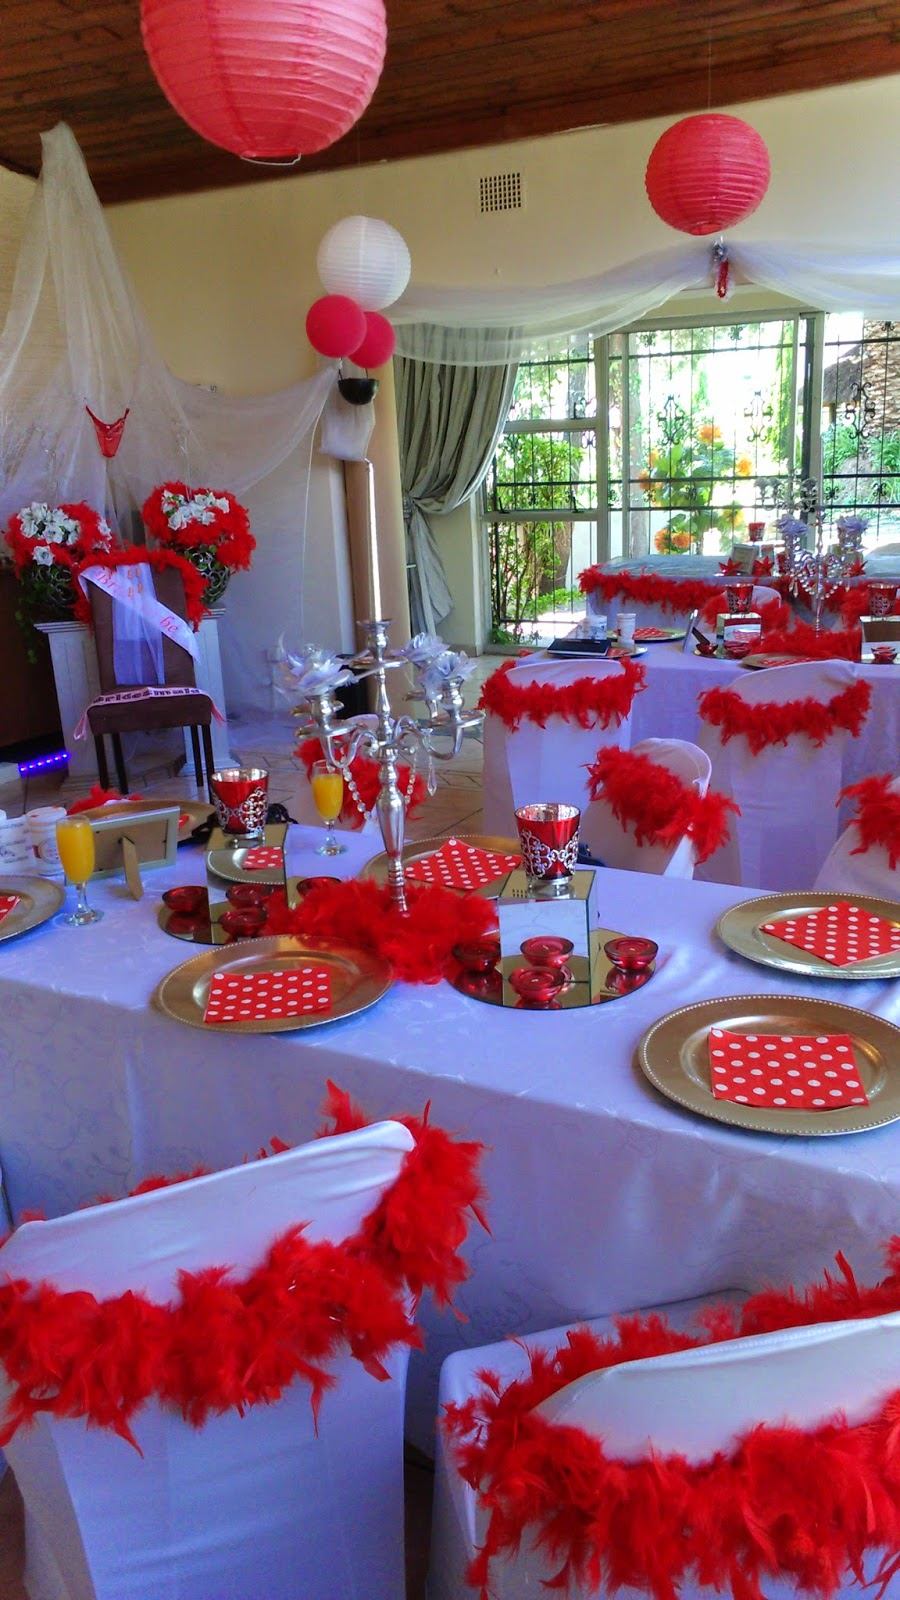 Bridal Shower Decorations, Venue, And Full Setup In Joh